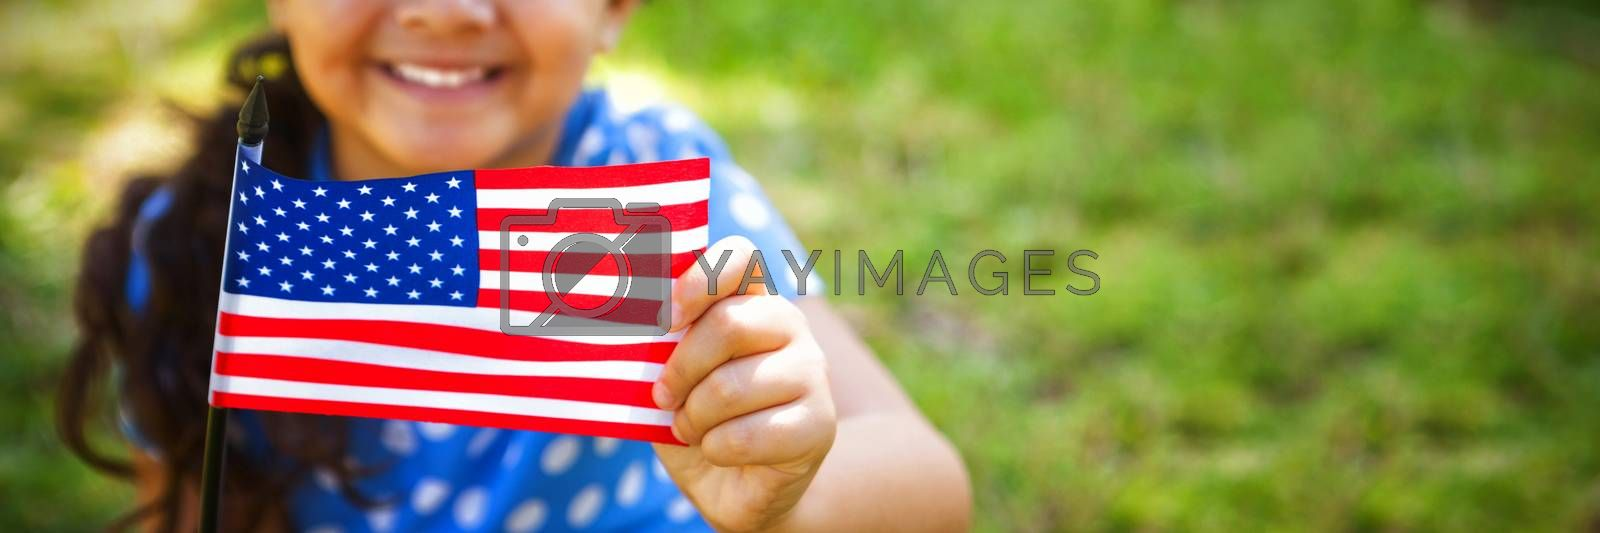 Portrait of girl holding American flag while standing at park